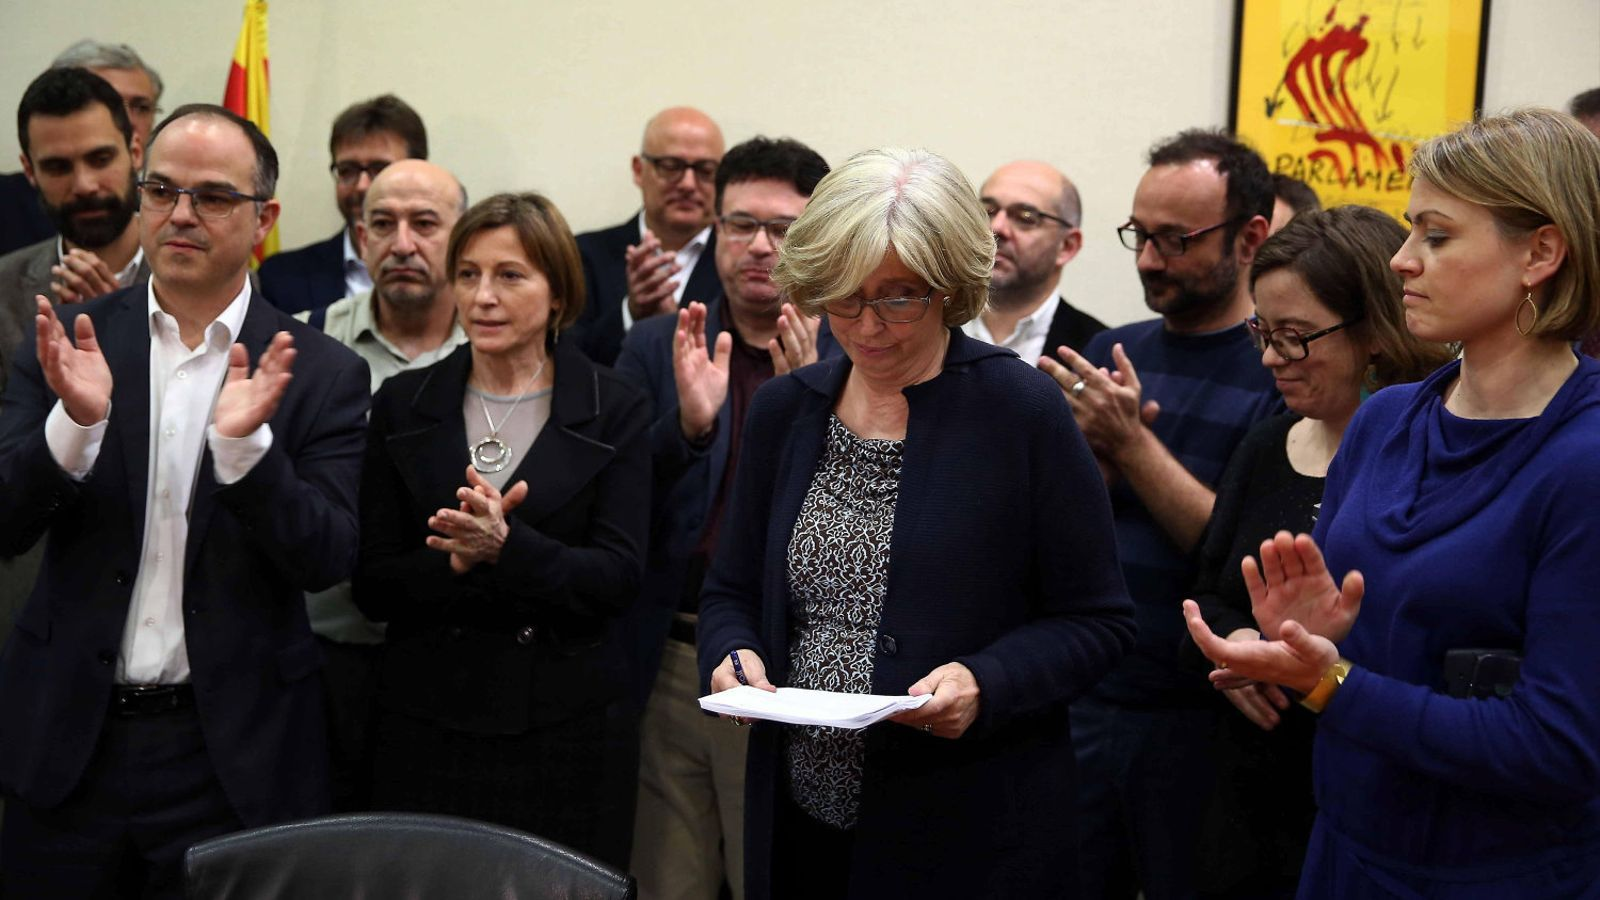 Rigau receives an ovation from fellow members of the Catalan Parliament. Source: Toni Albir / EFE